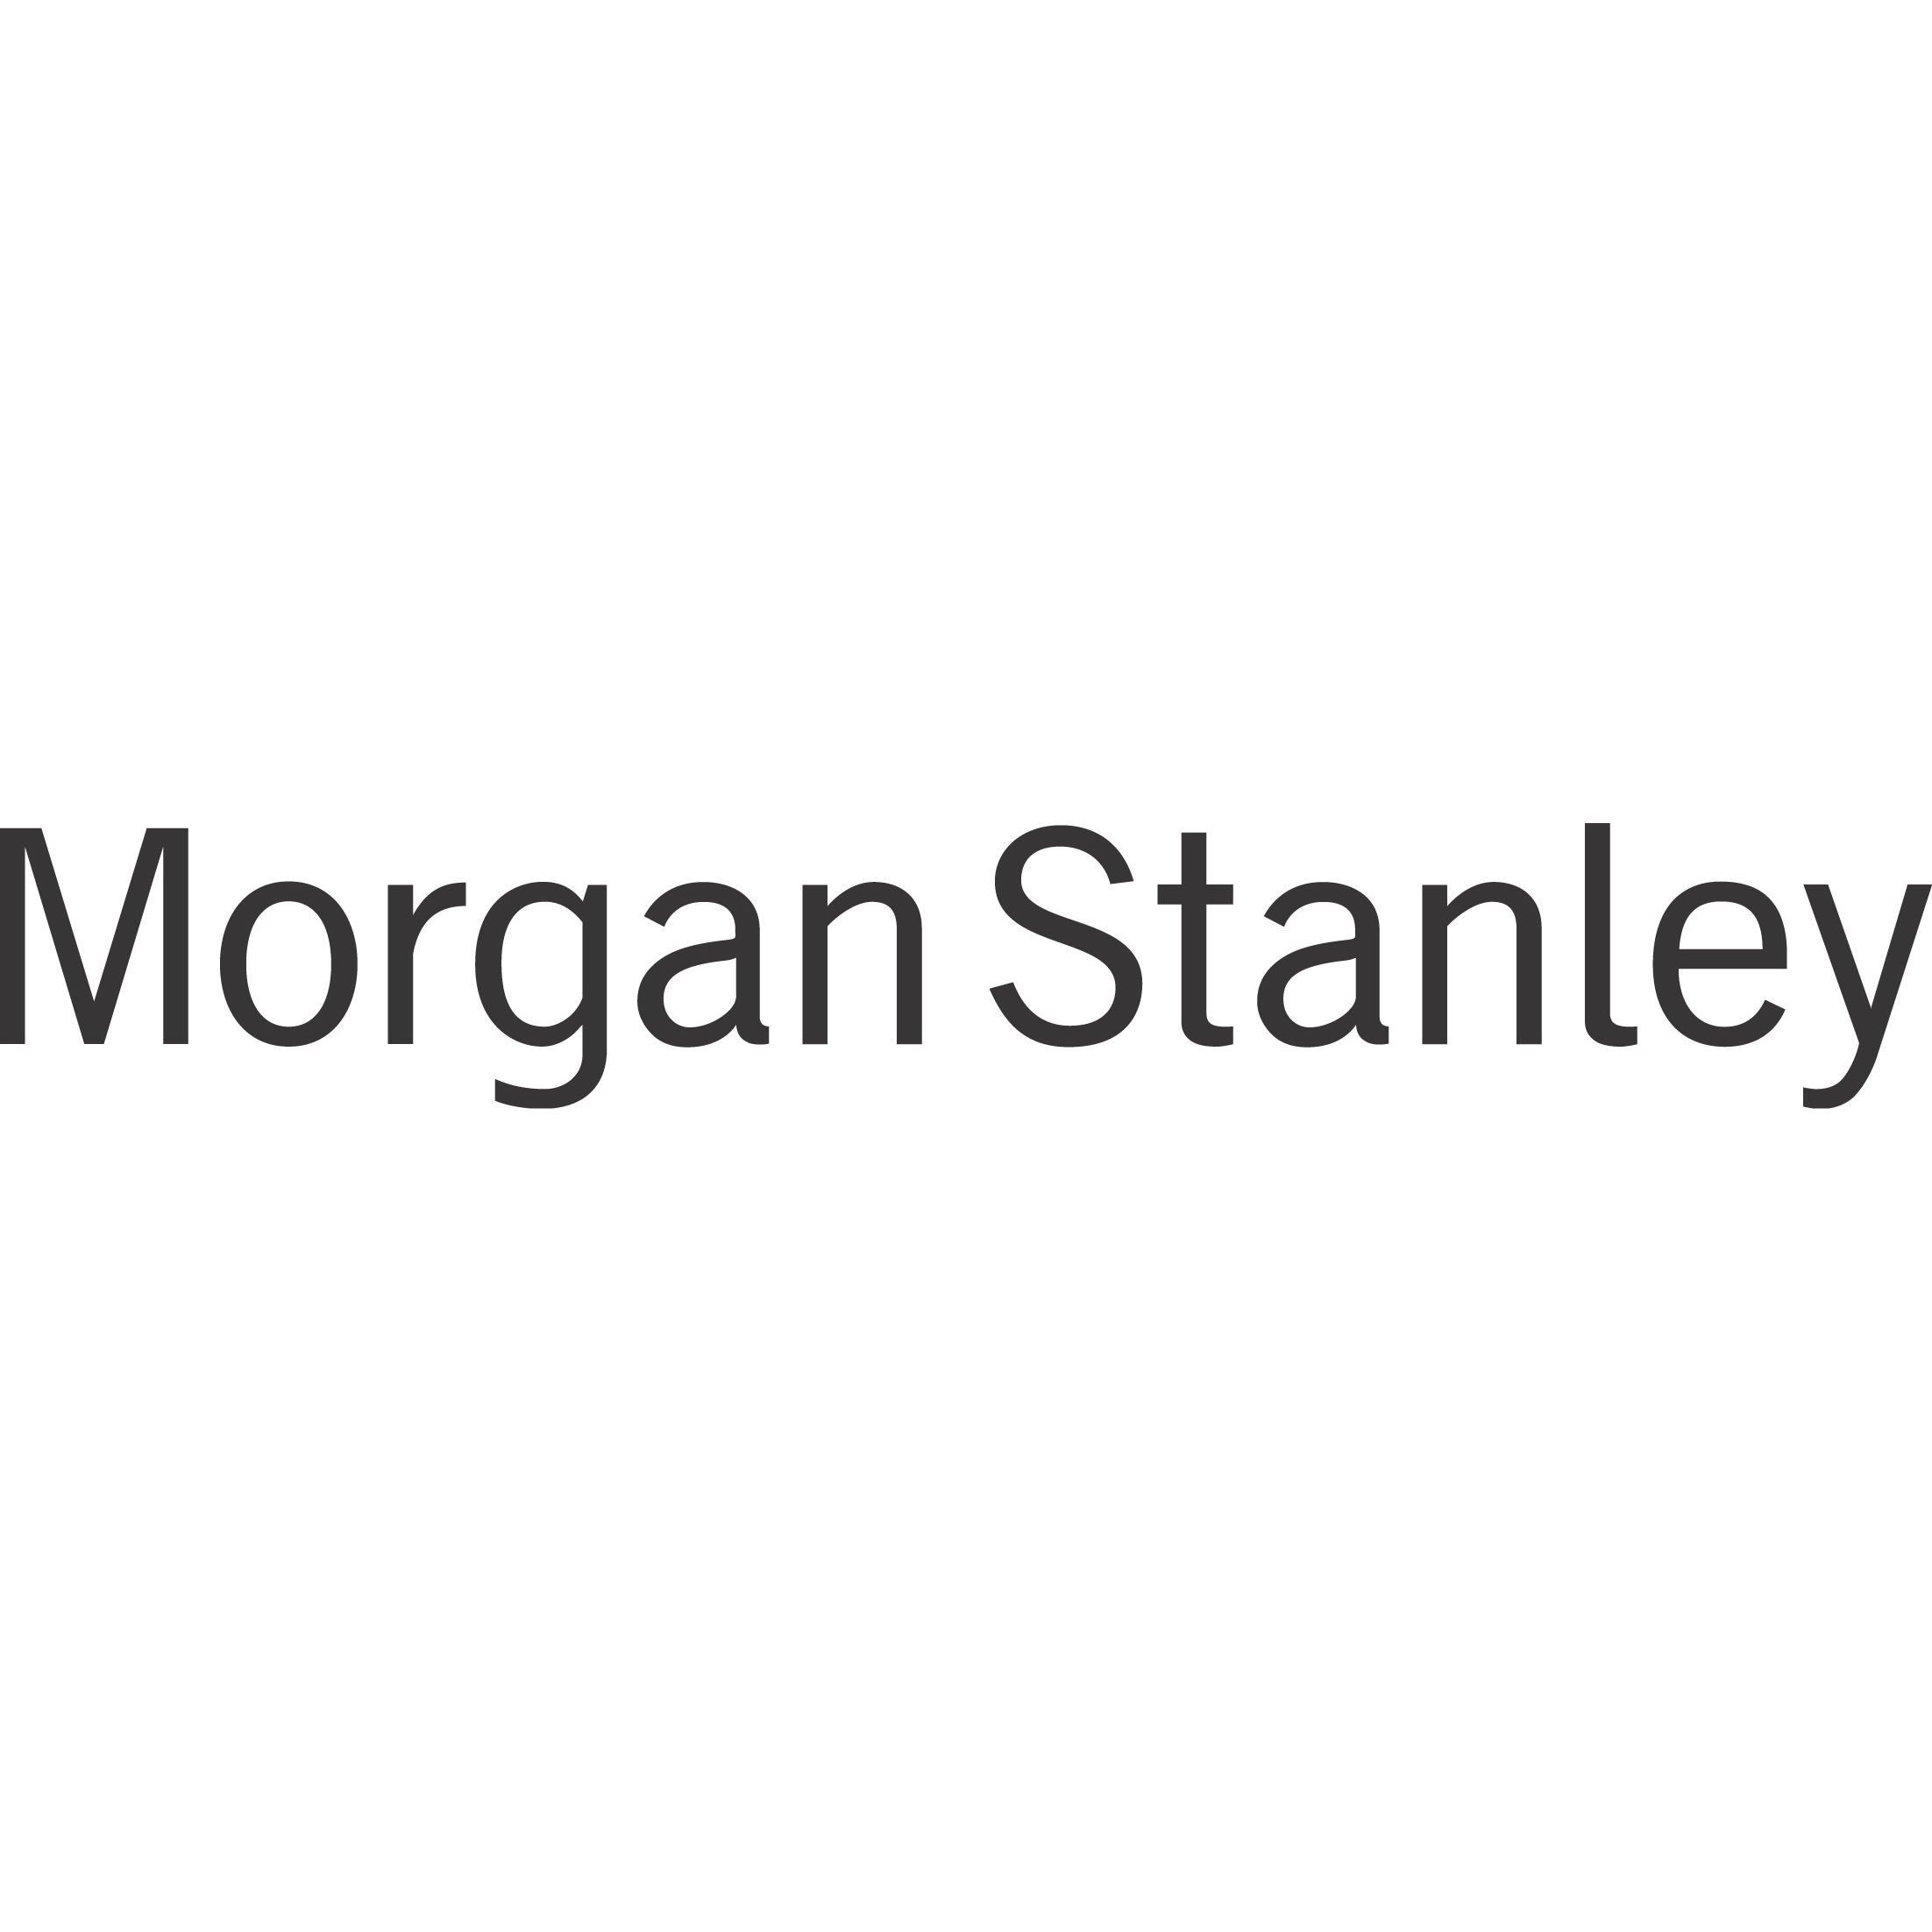 John Wilford Farina - Morgan Stanley | Financial Advisor in Washington,District of Columbia